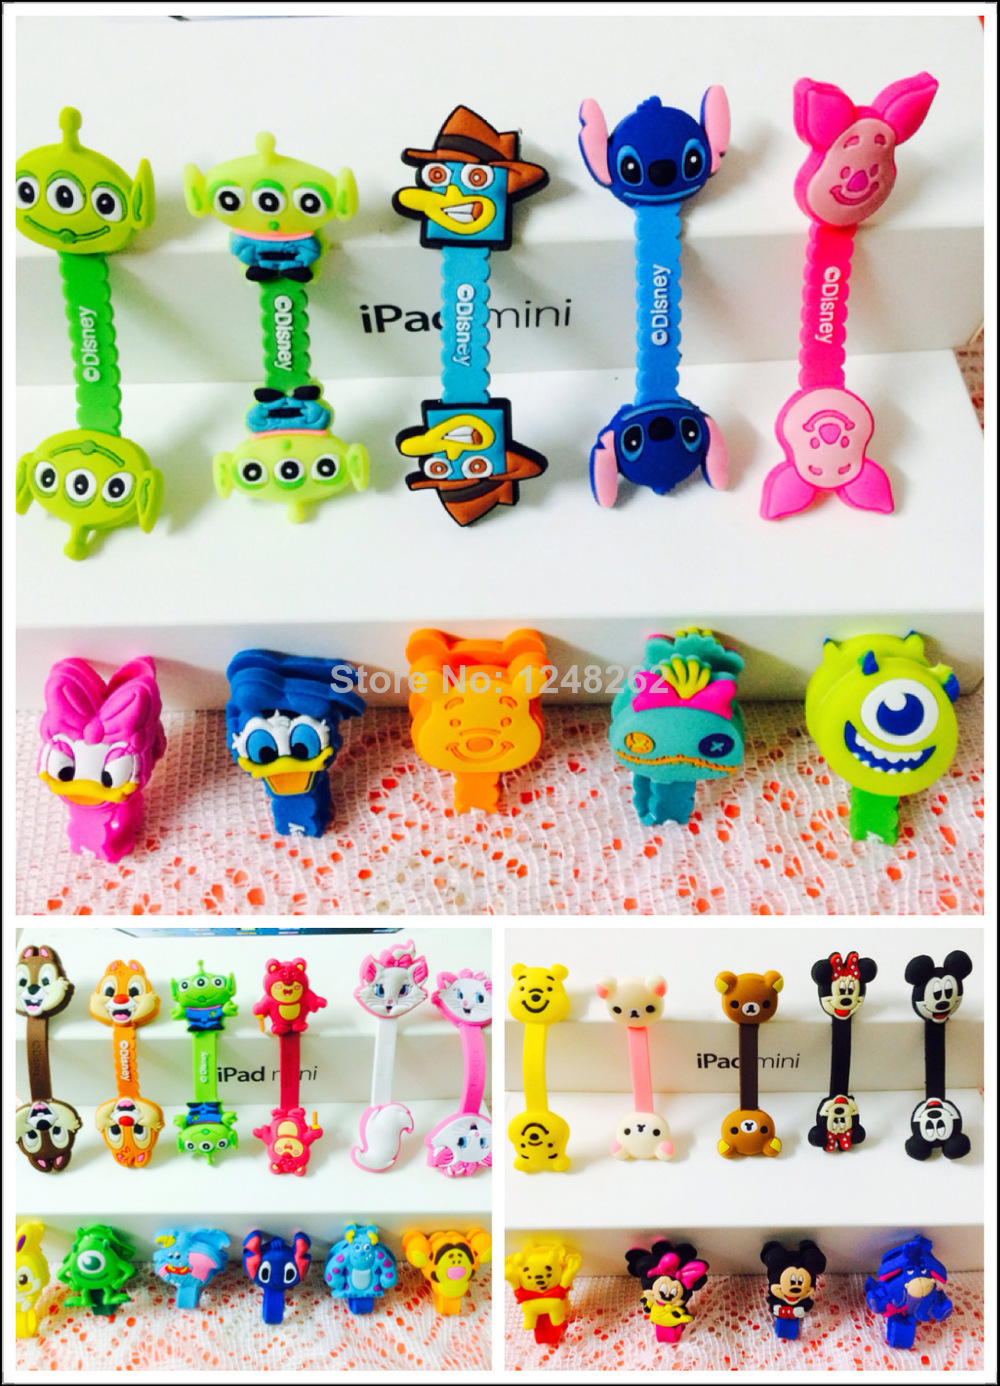 Creative Silicone long strip Cartoon Earphone Wire Cord Cable Winder Organizer